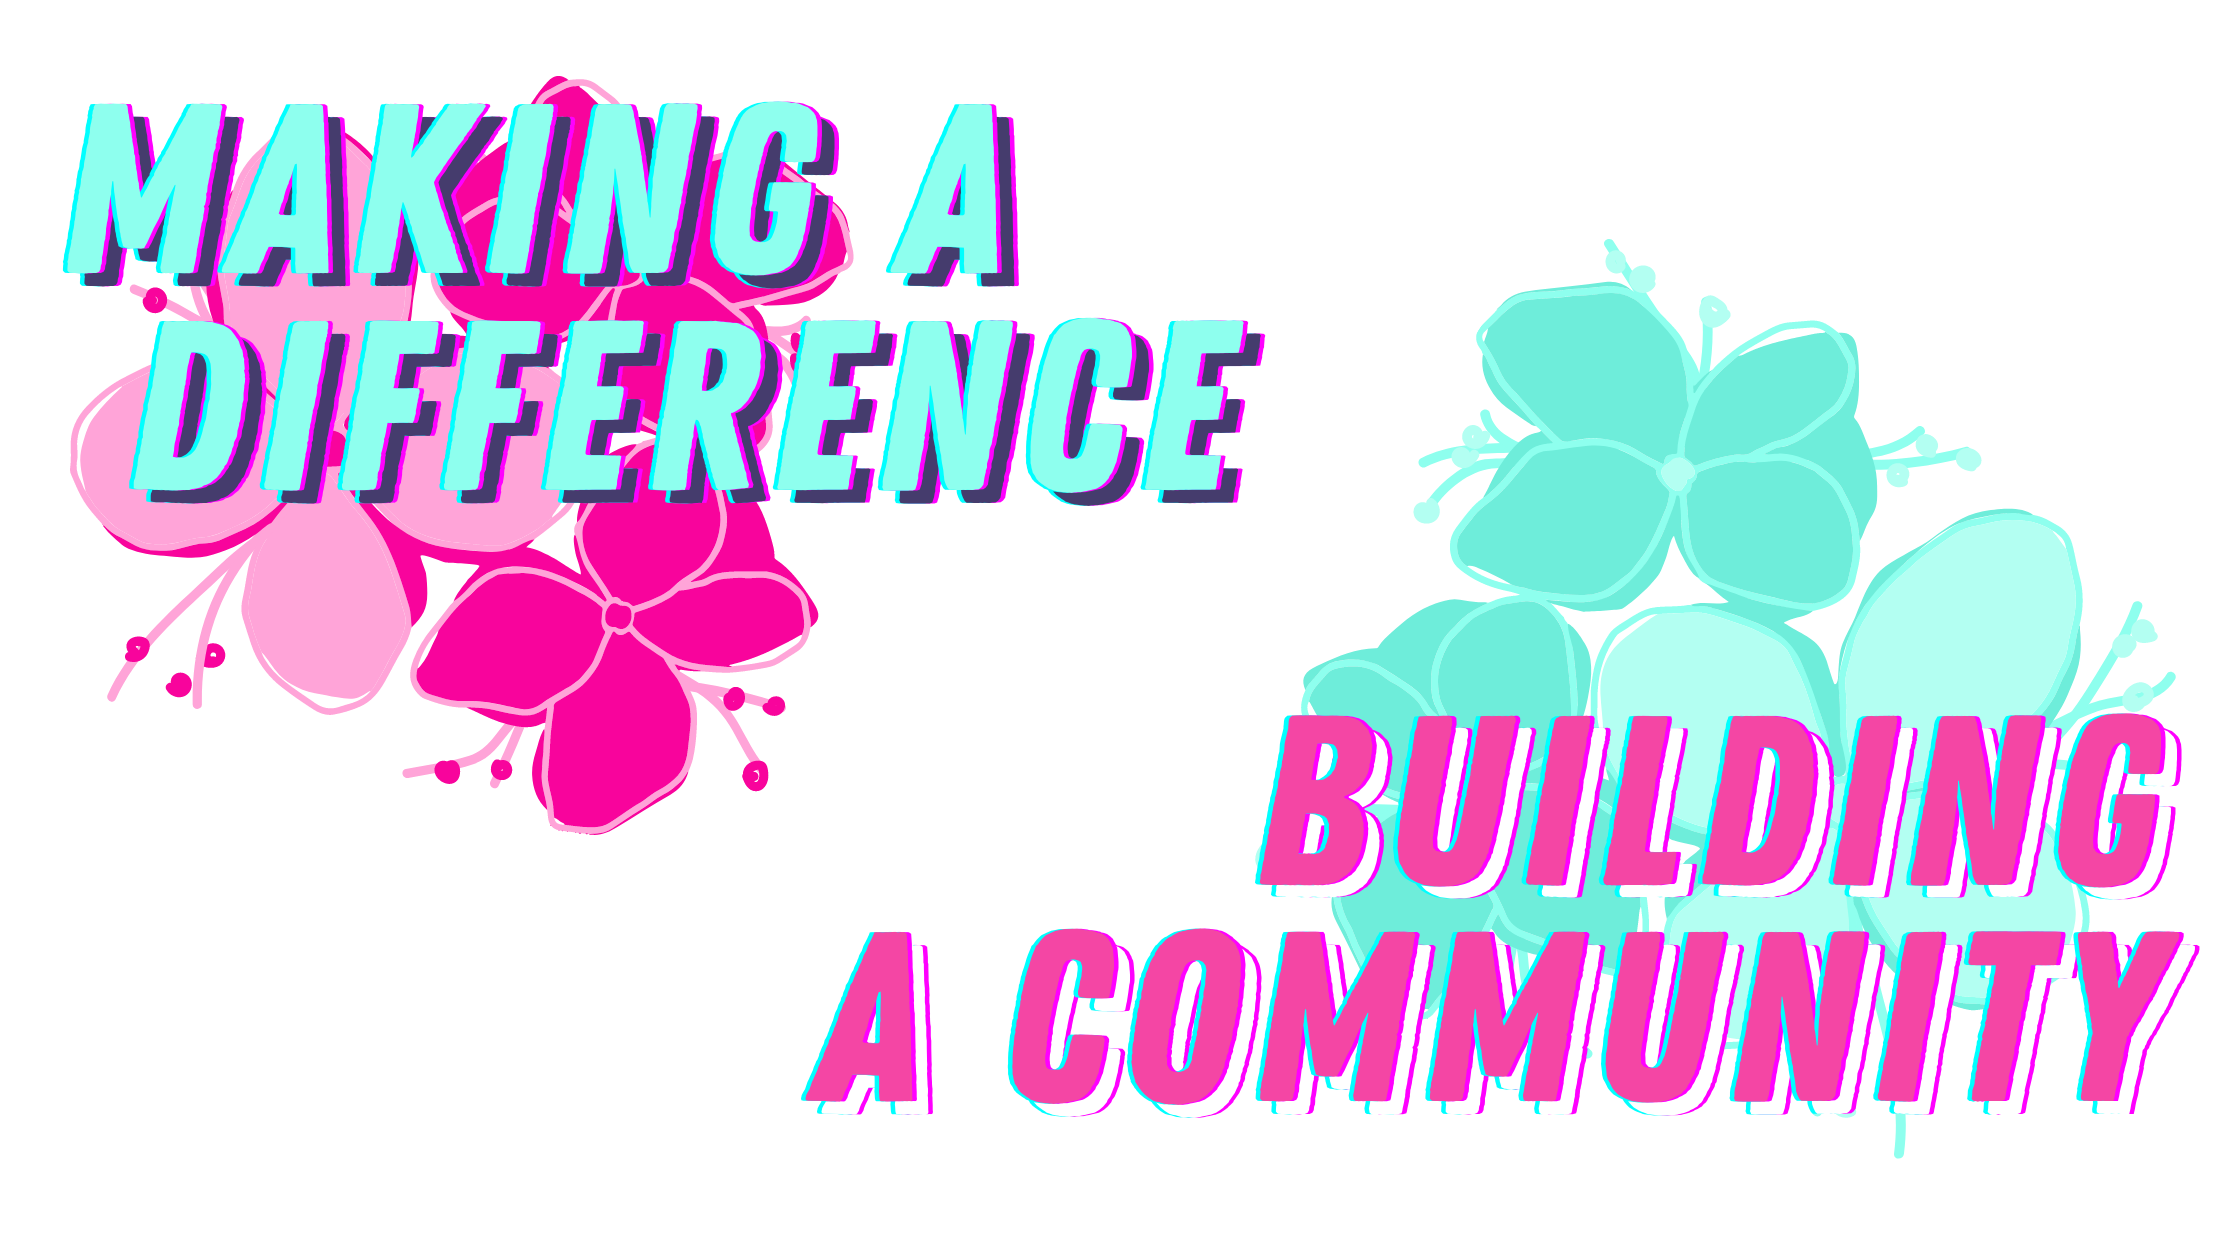 Making a Difference, Building a Community